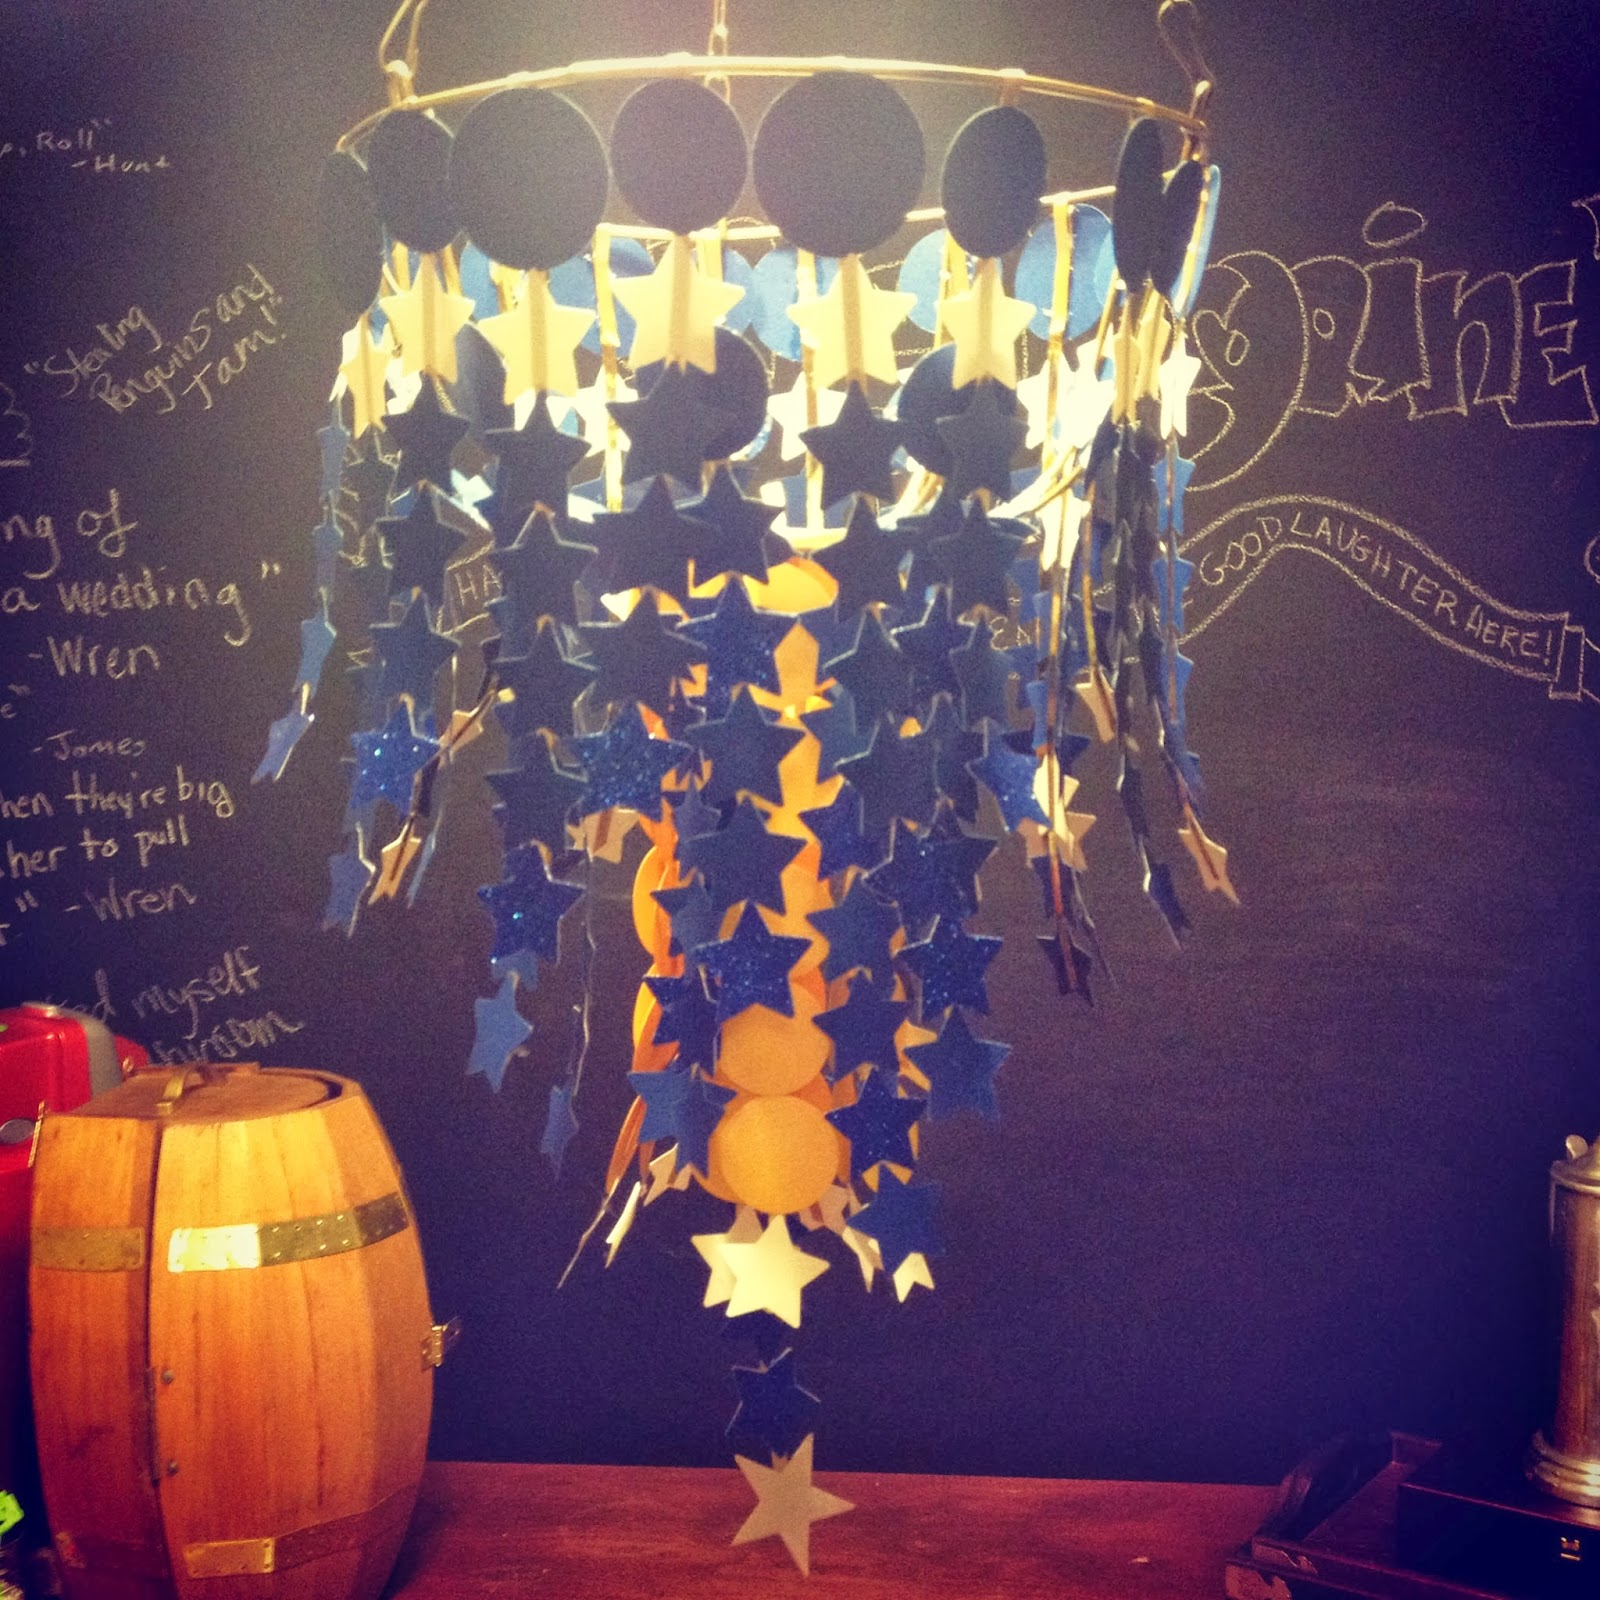 Paper Chandelier Madcap Frenzy Graphic Design Diy Papercrafts And Everything In